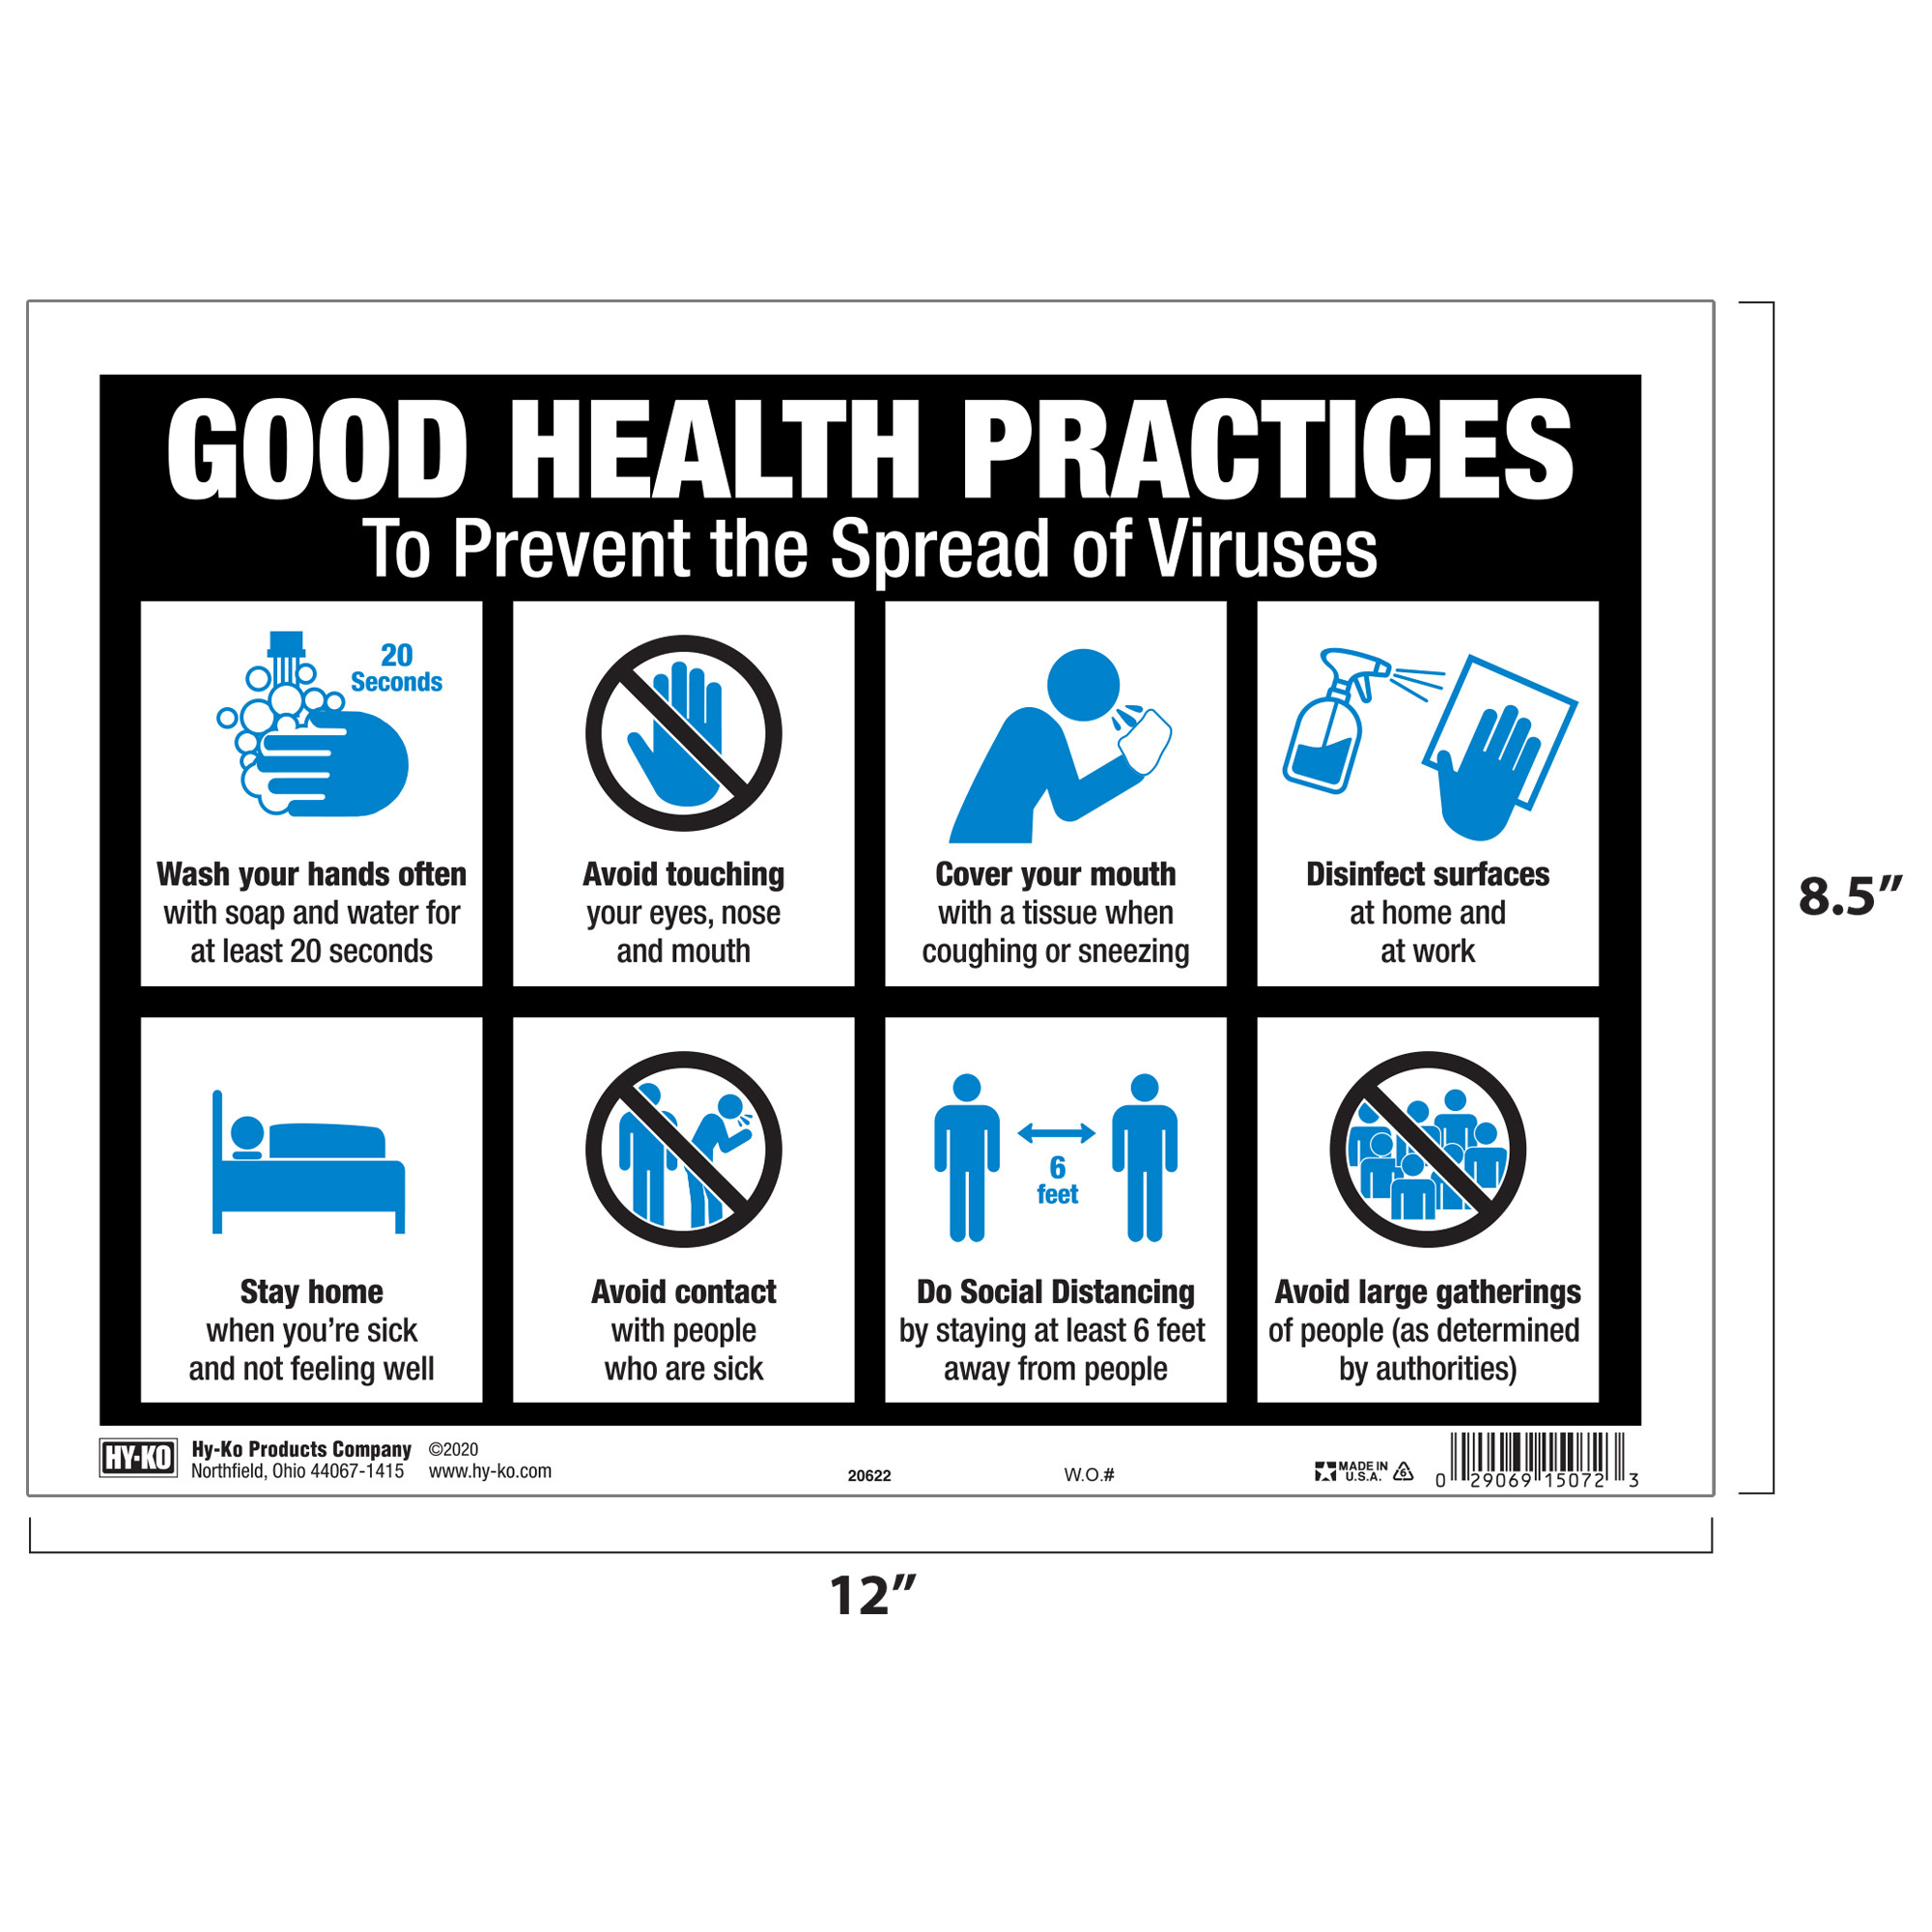 【HY-KO】Good Health Practices Sign, 12 x 8.5 inch, 8 Healthy Reminders  グラフィックプラスチックサイン 5 x 7インチ